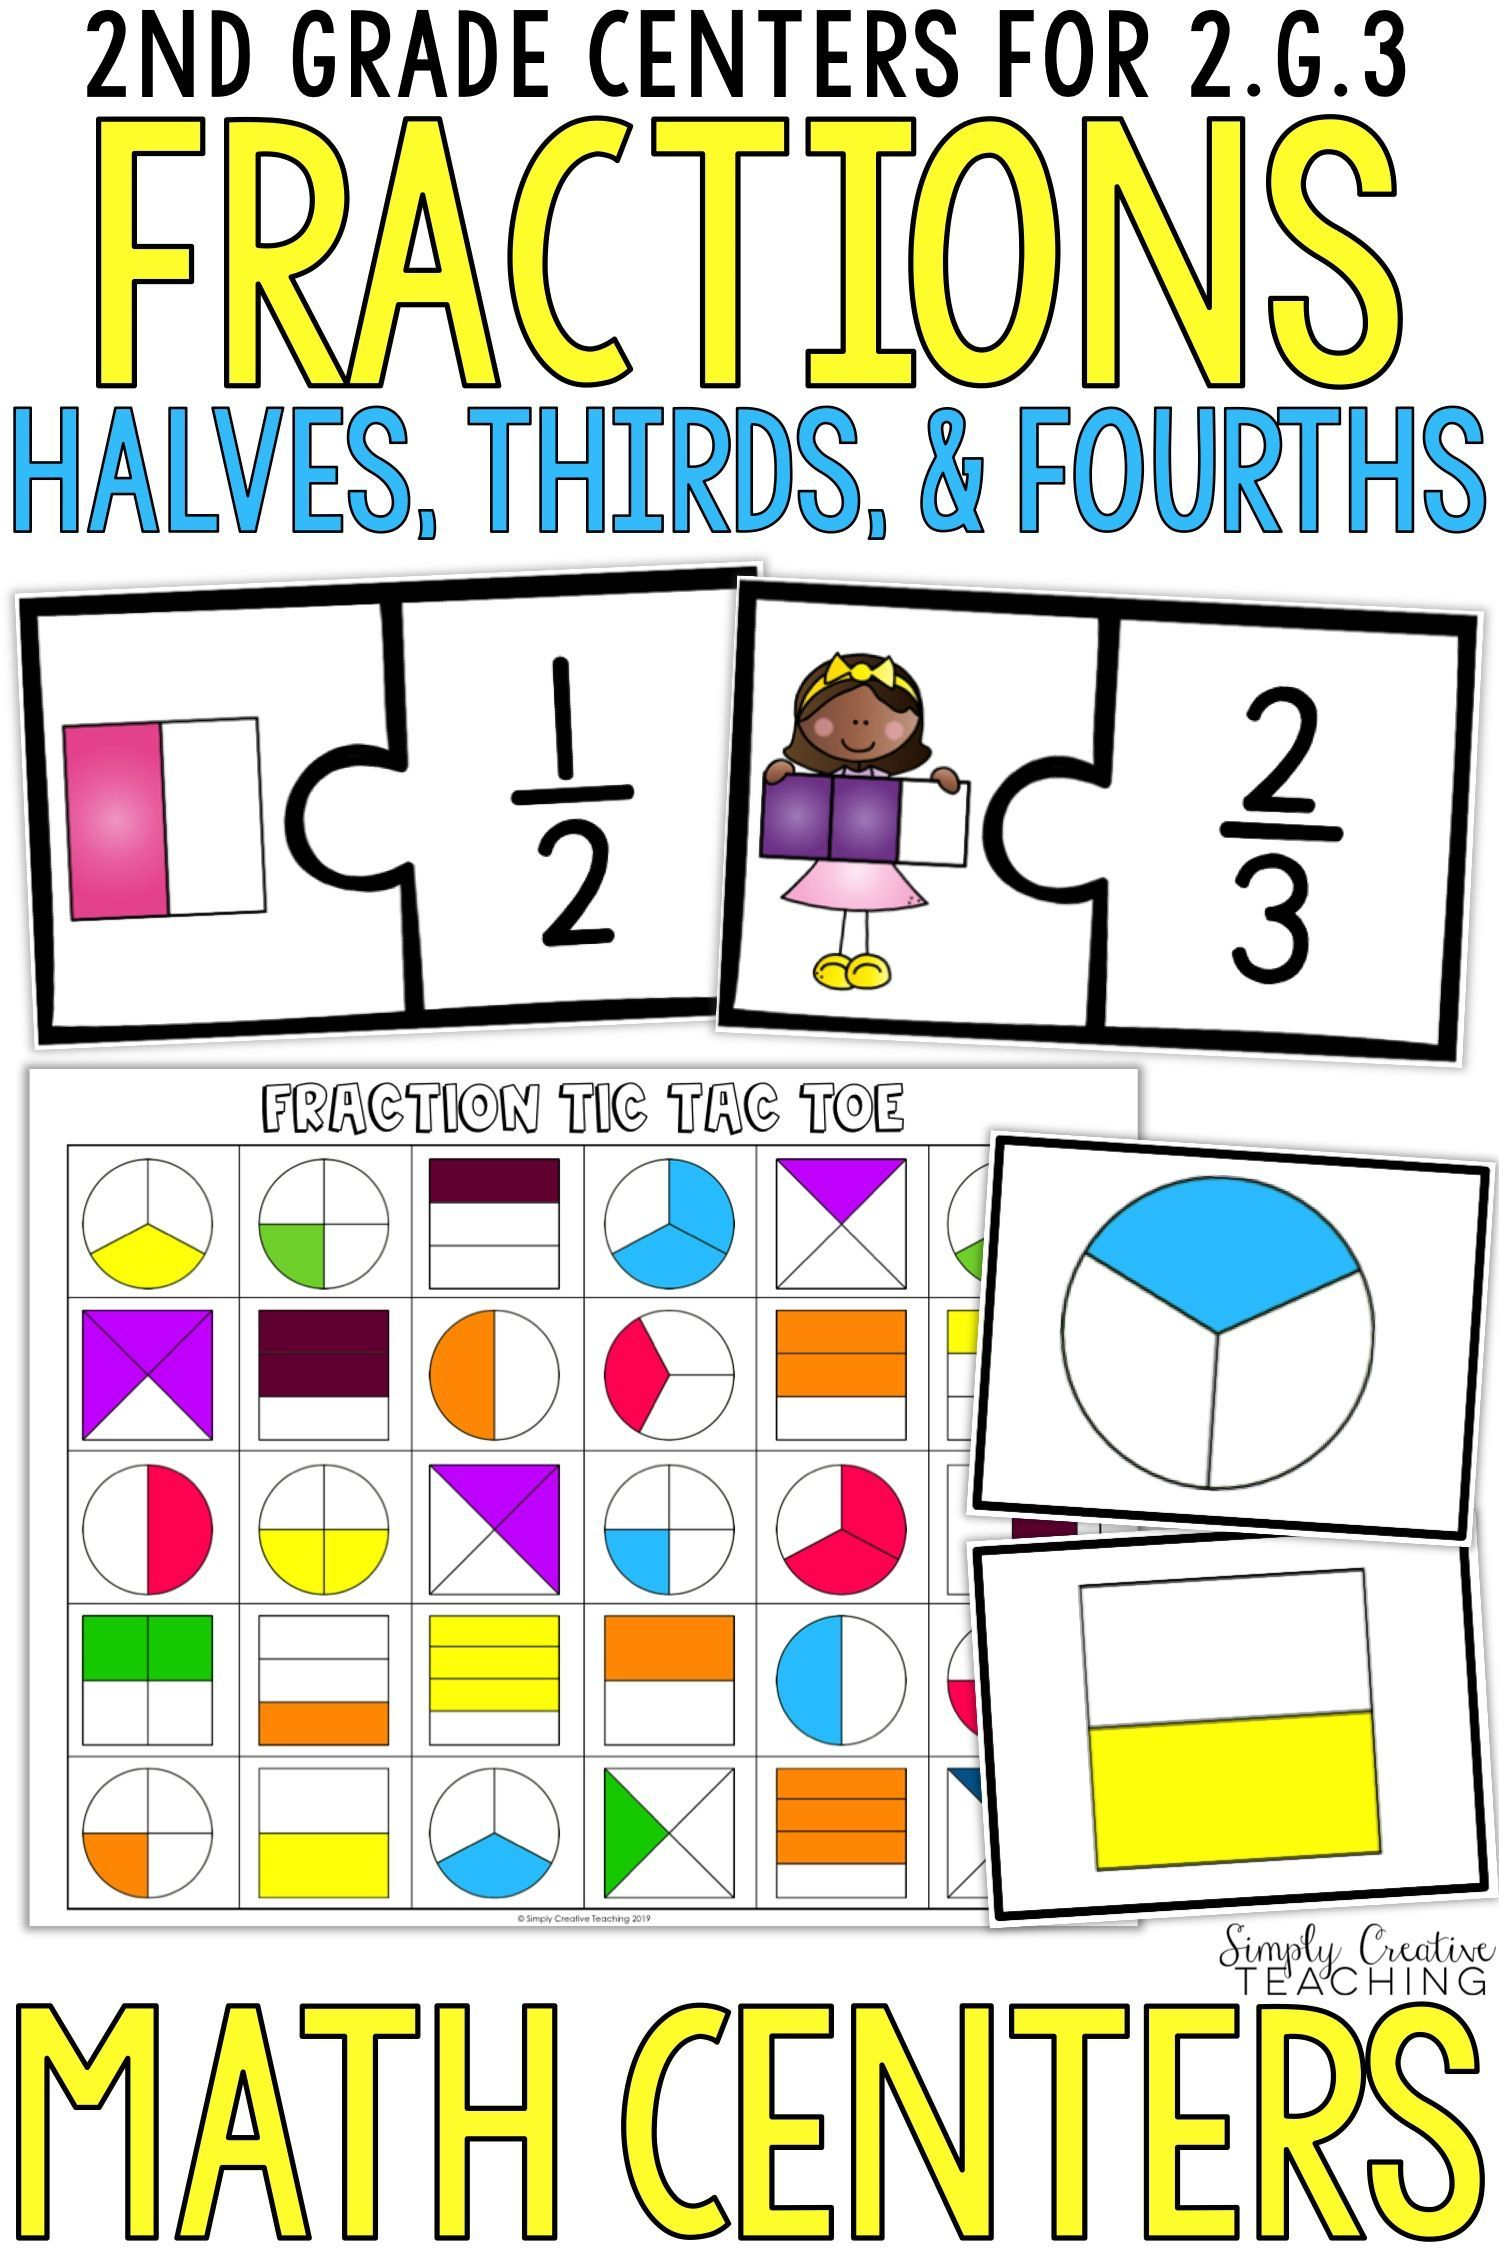 small resolution of 2nd Grade Partitioning Shapes into Halves